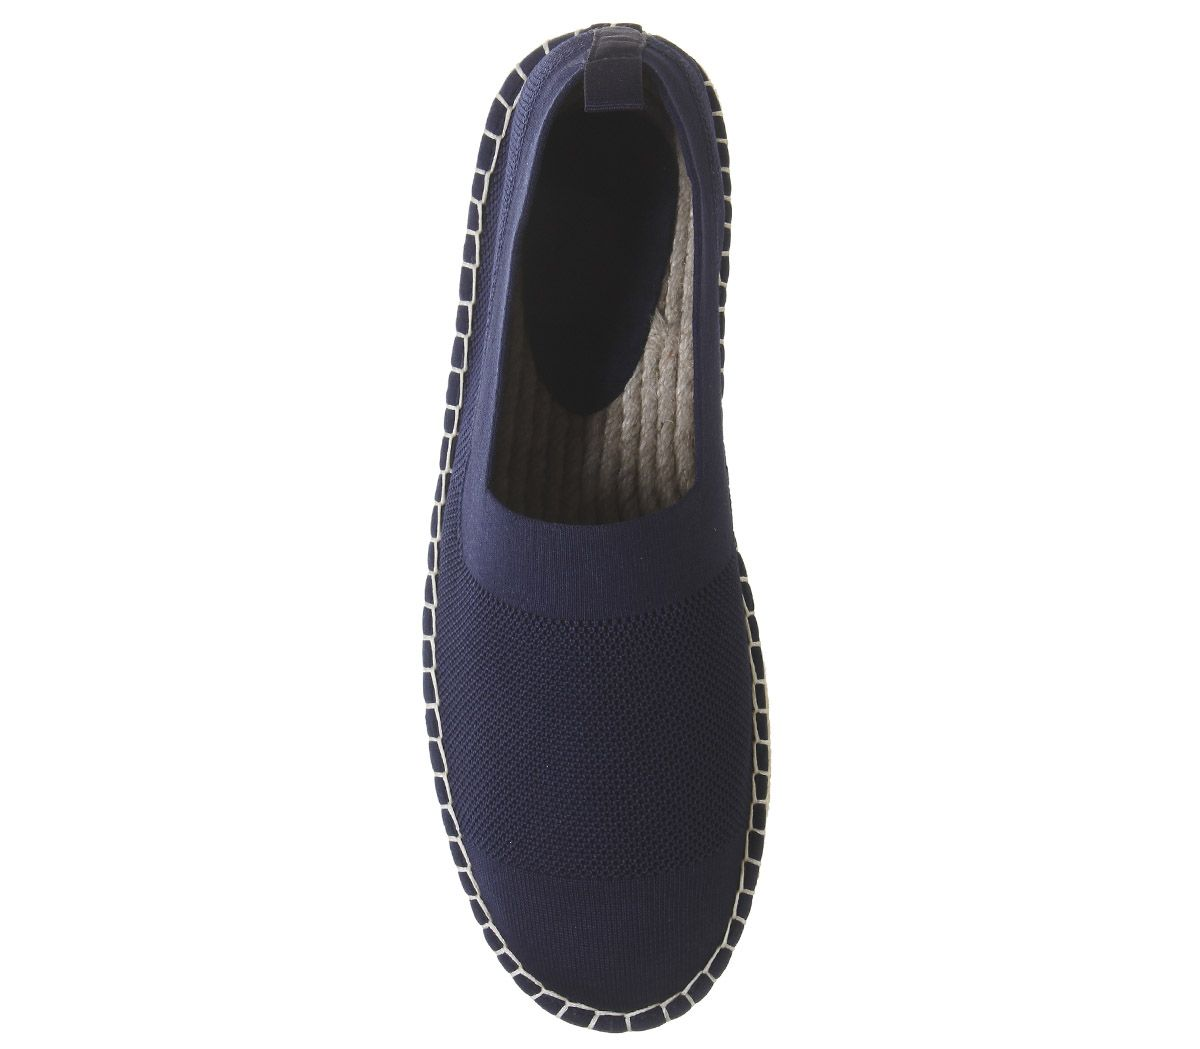 Mens-Office-Lombok-Knit-Espadrilles-Navy-Casual-Shoes thumbnail 18